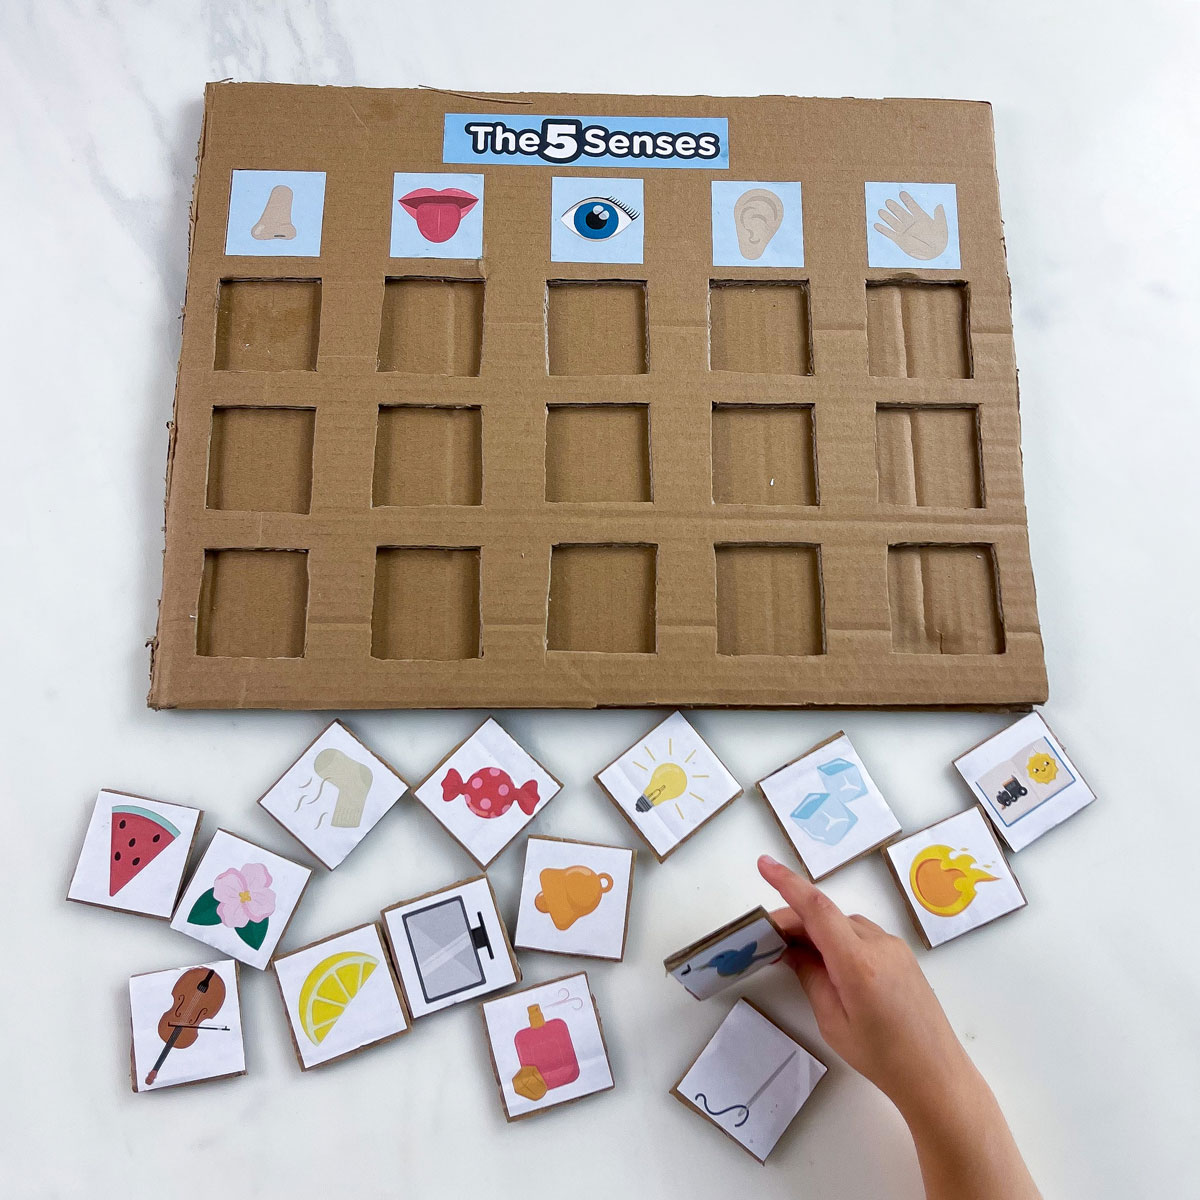 5 Senses Activity – How to Make a Puzzle for Kids